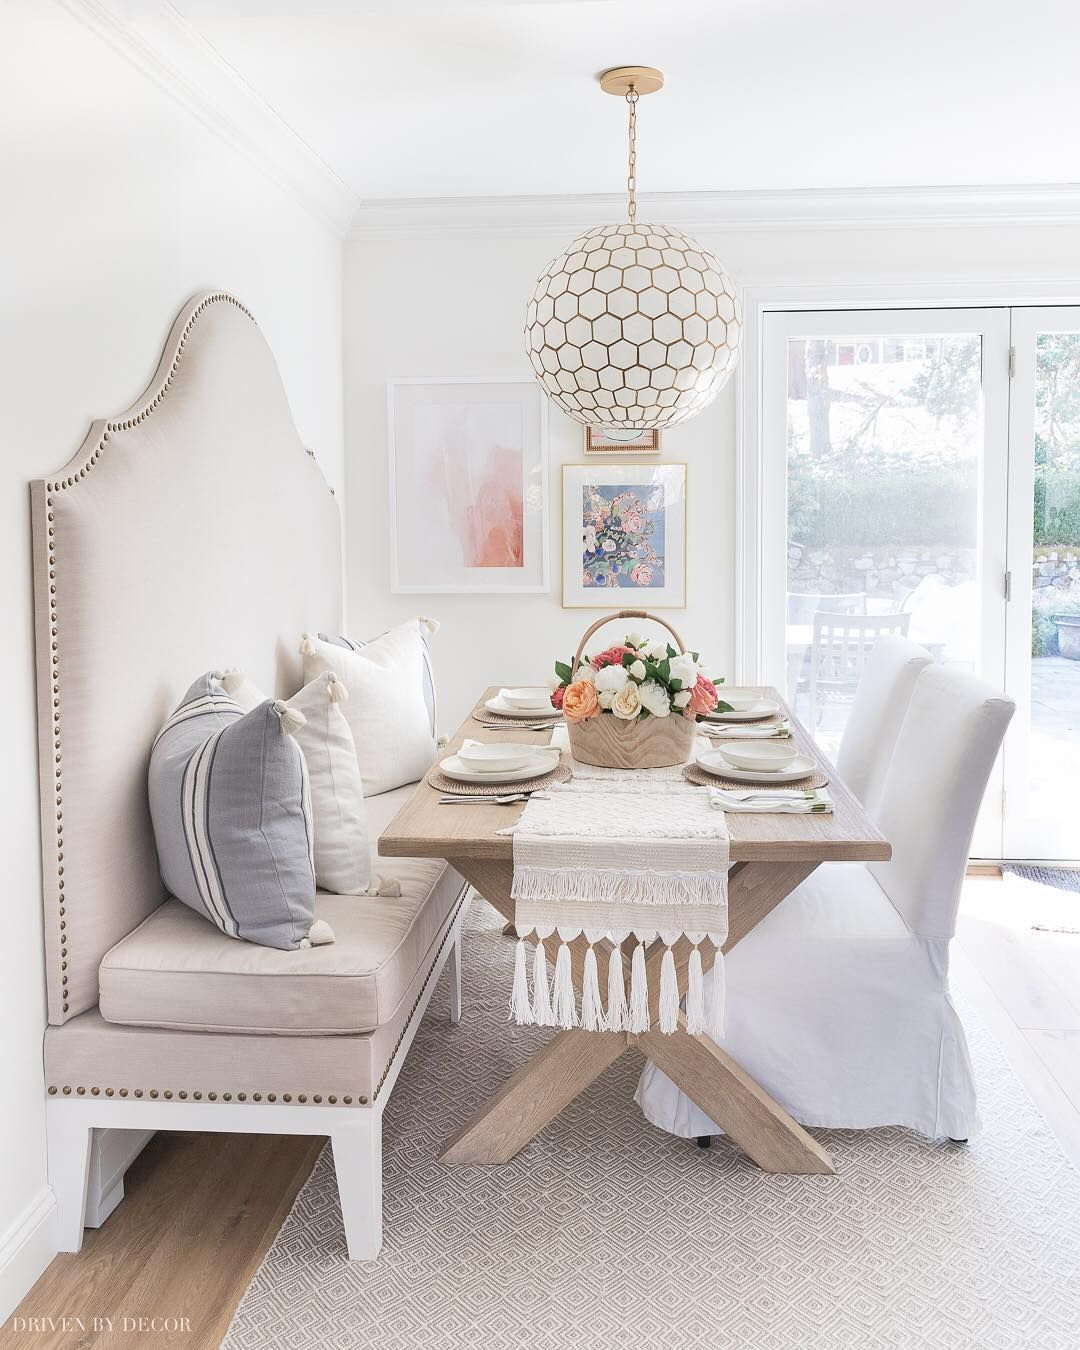 Driven By Decor Kris On Instagram Everyone Always Jokes About The Restoration Hardware Dining Room Pottery Barn Living Room Pottery Barn Dining Room Table